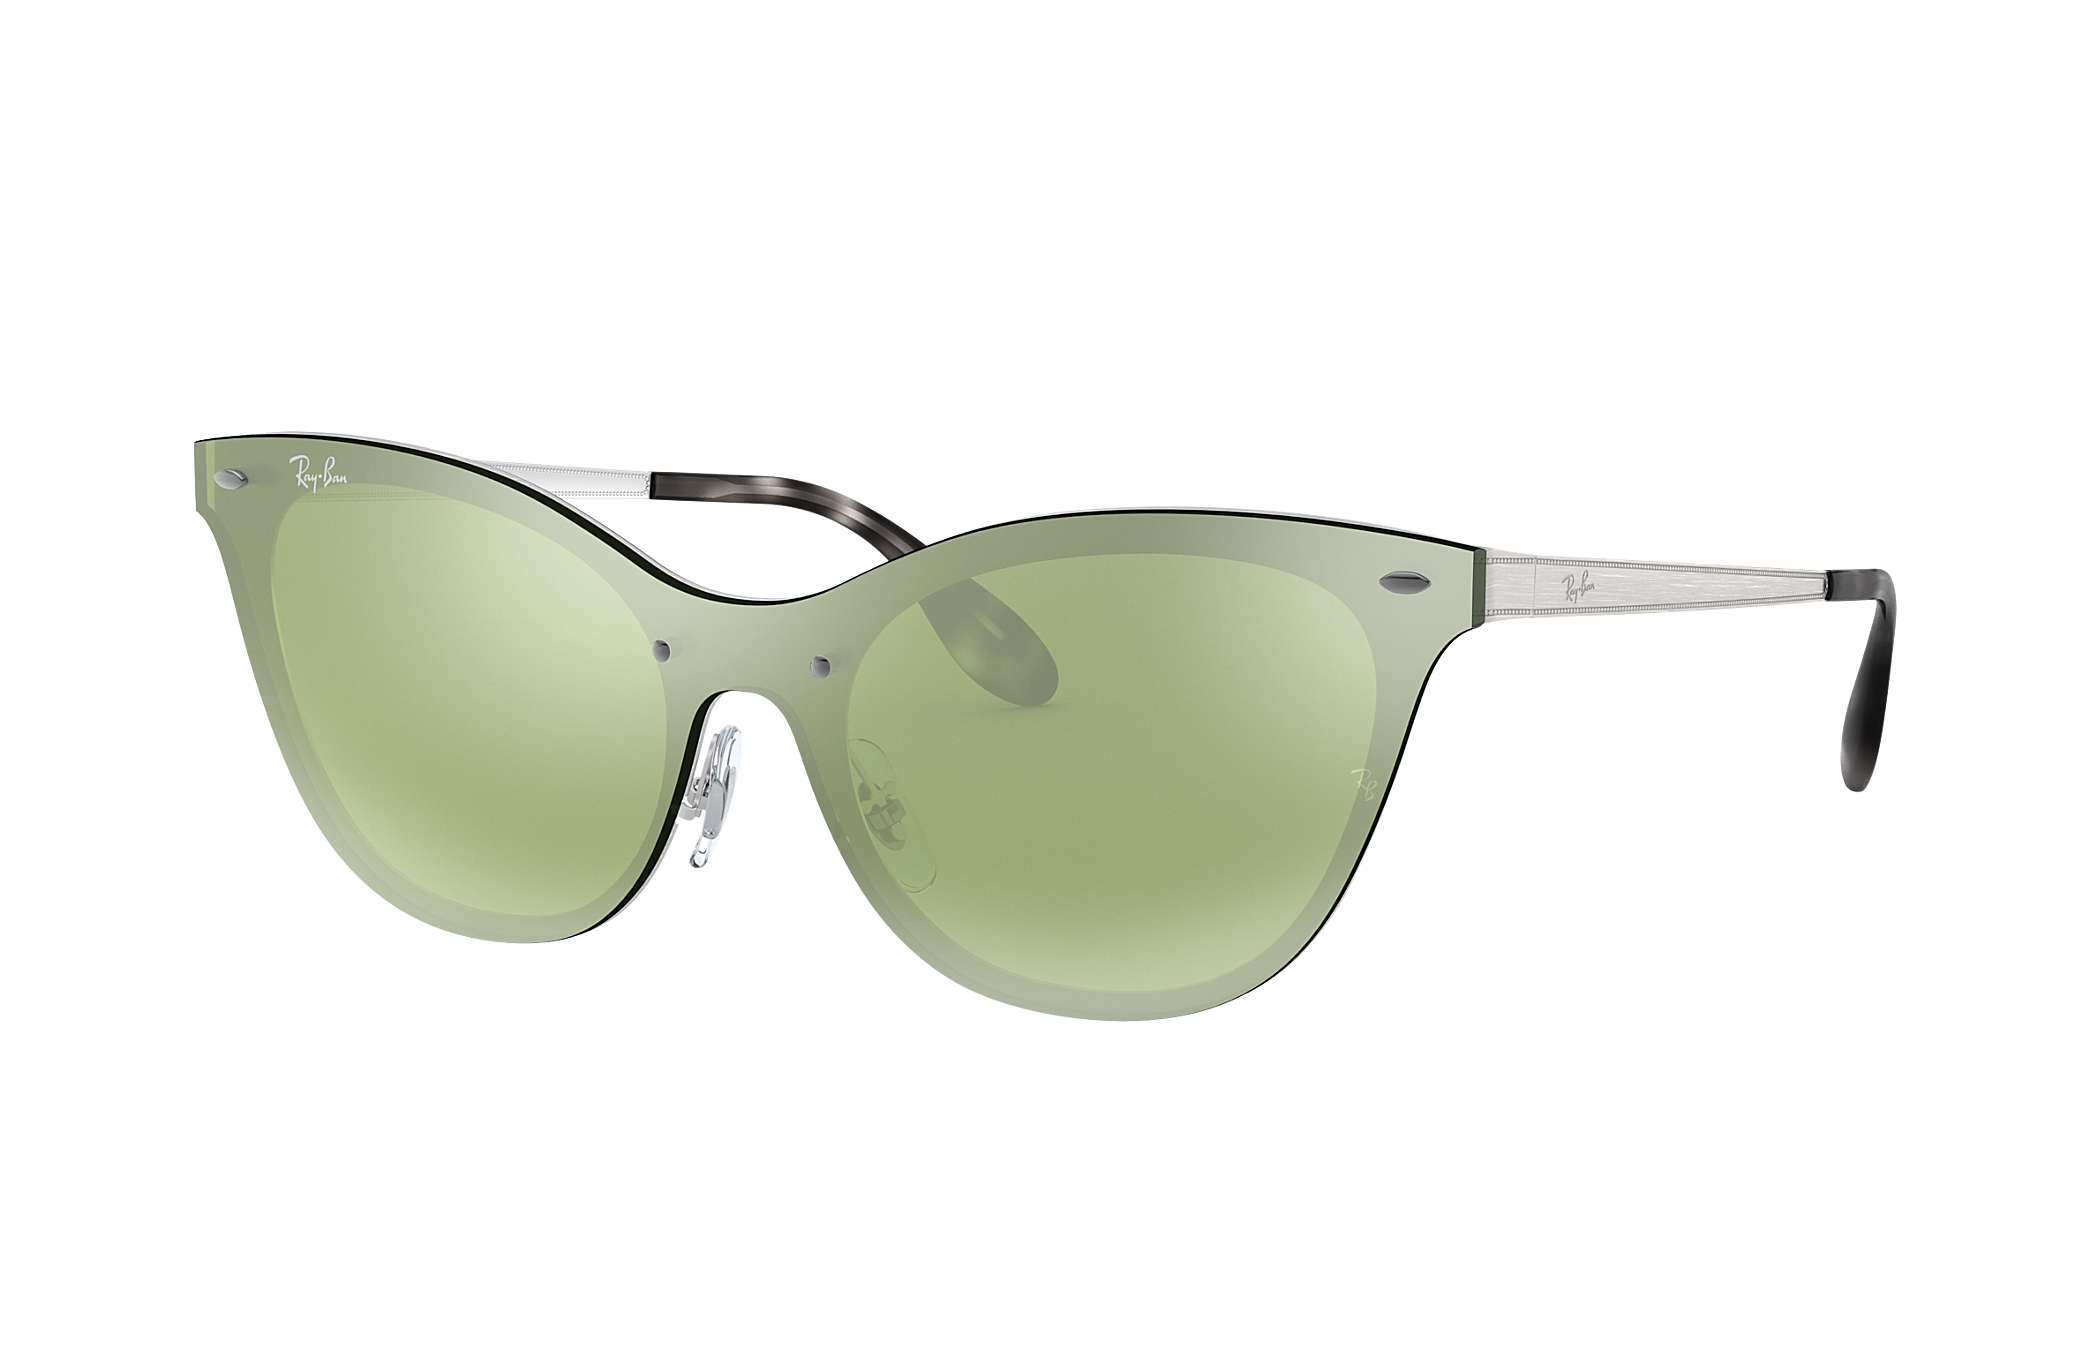 d375544d85d20 Ray-Ban Blaze Cat Eye RB3580N Silver - Steel - Dark Green Silver ...